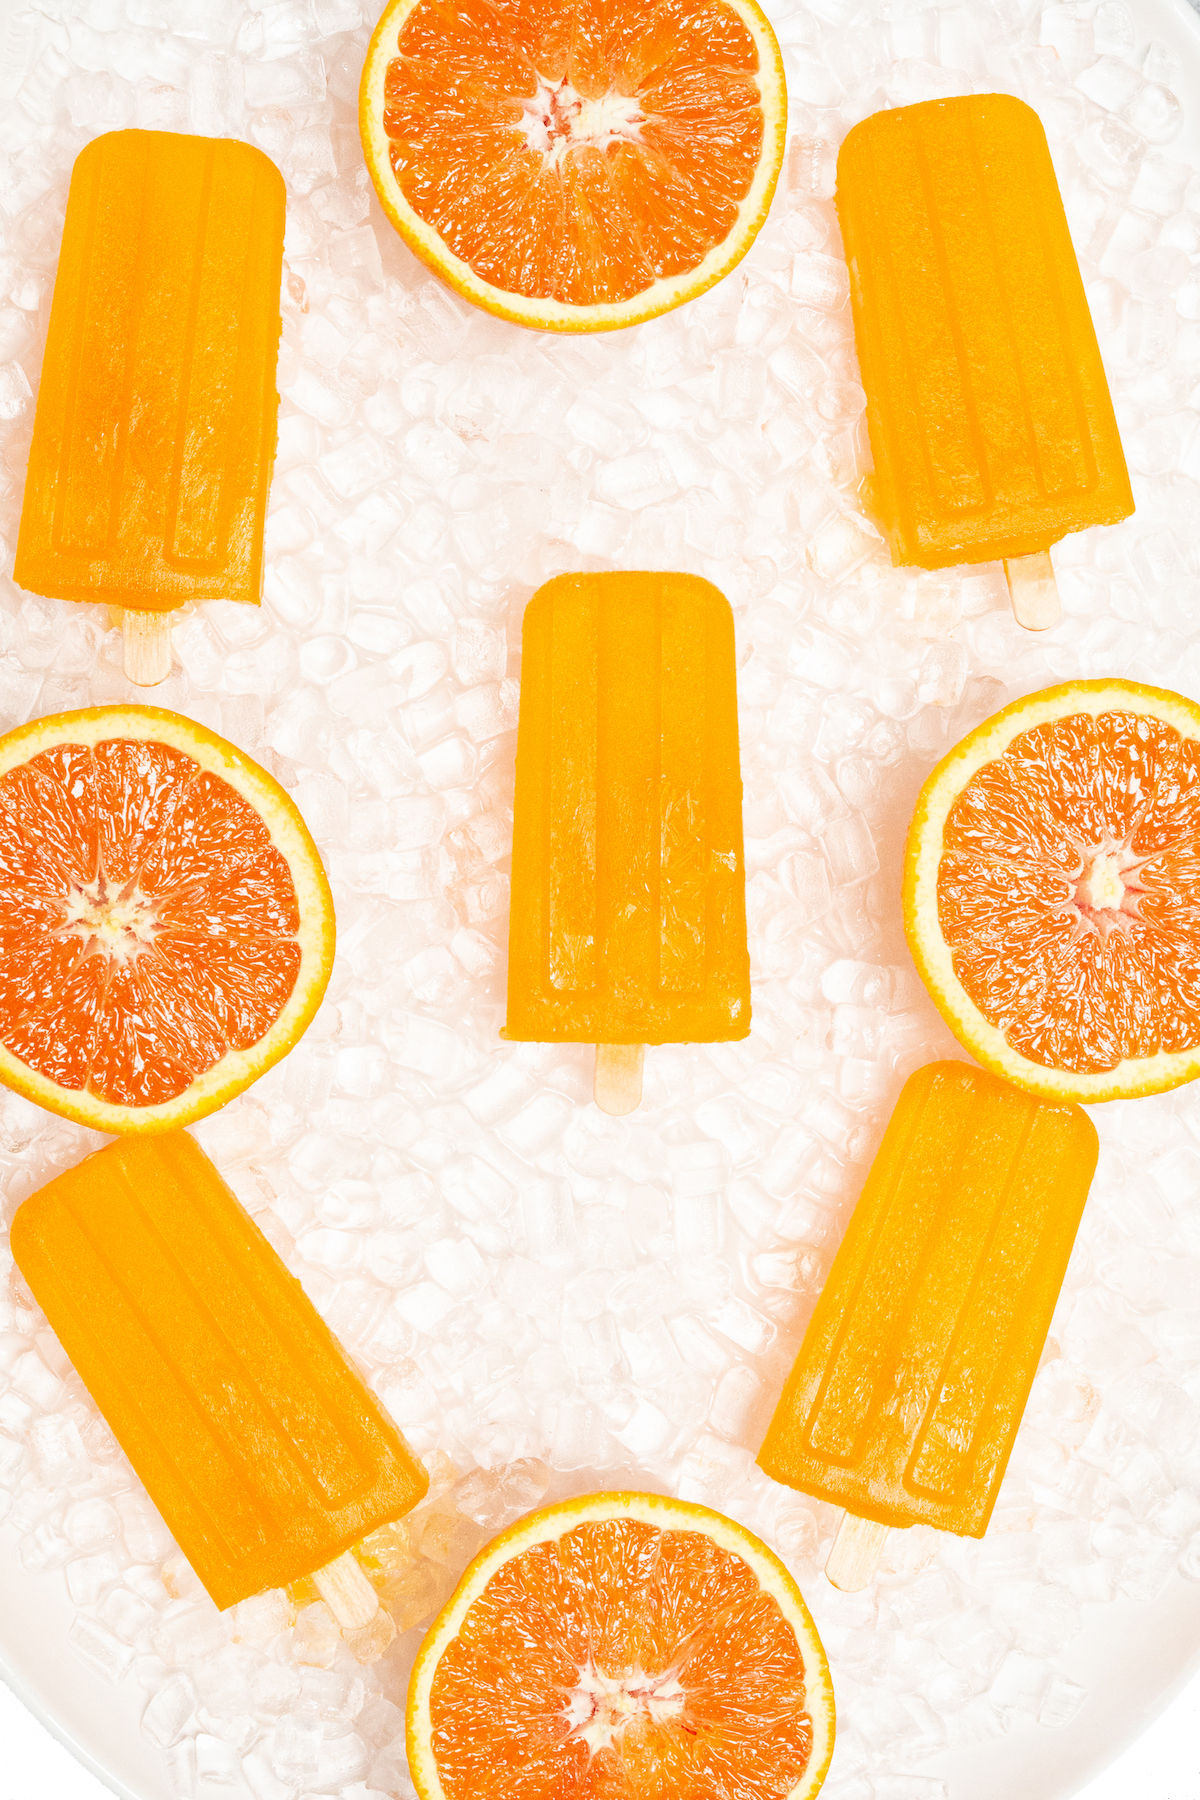 Five orange popsicles are arranged on pebble ice on a white platter. They are garnished with oranges sliced in half.